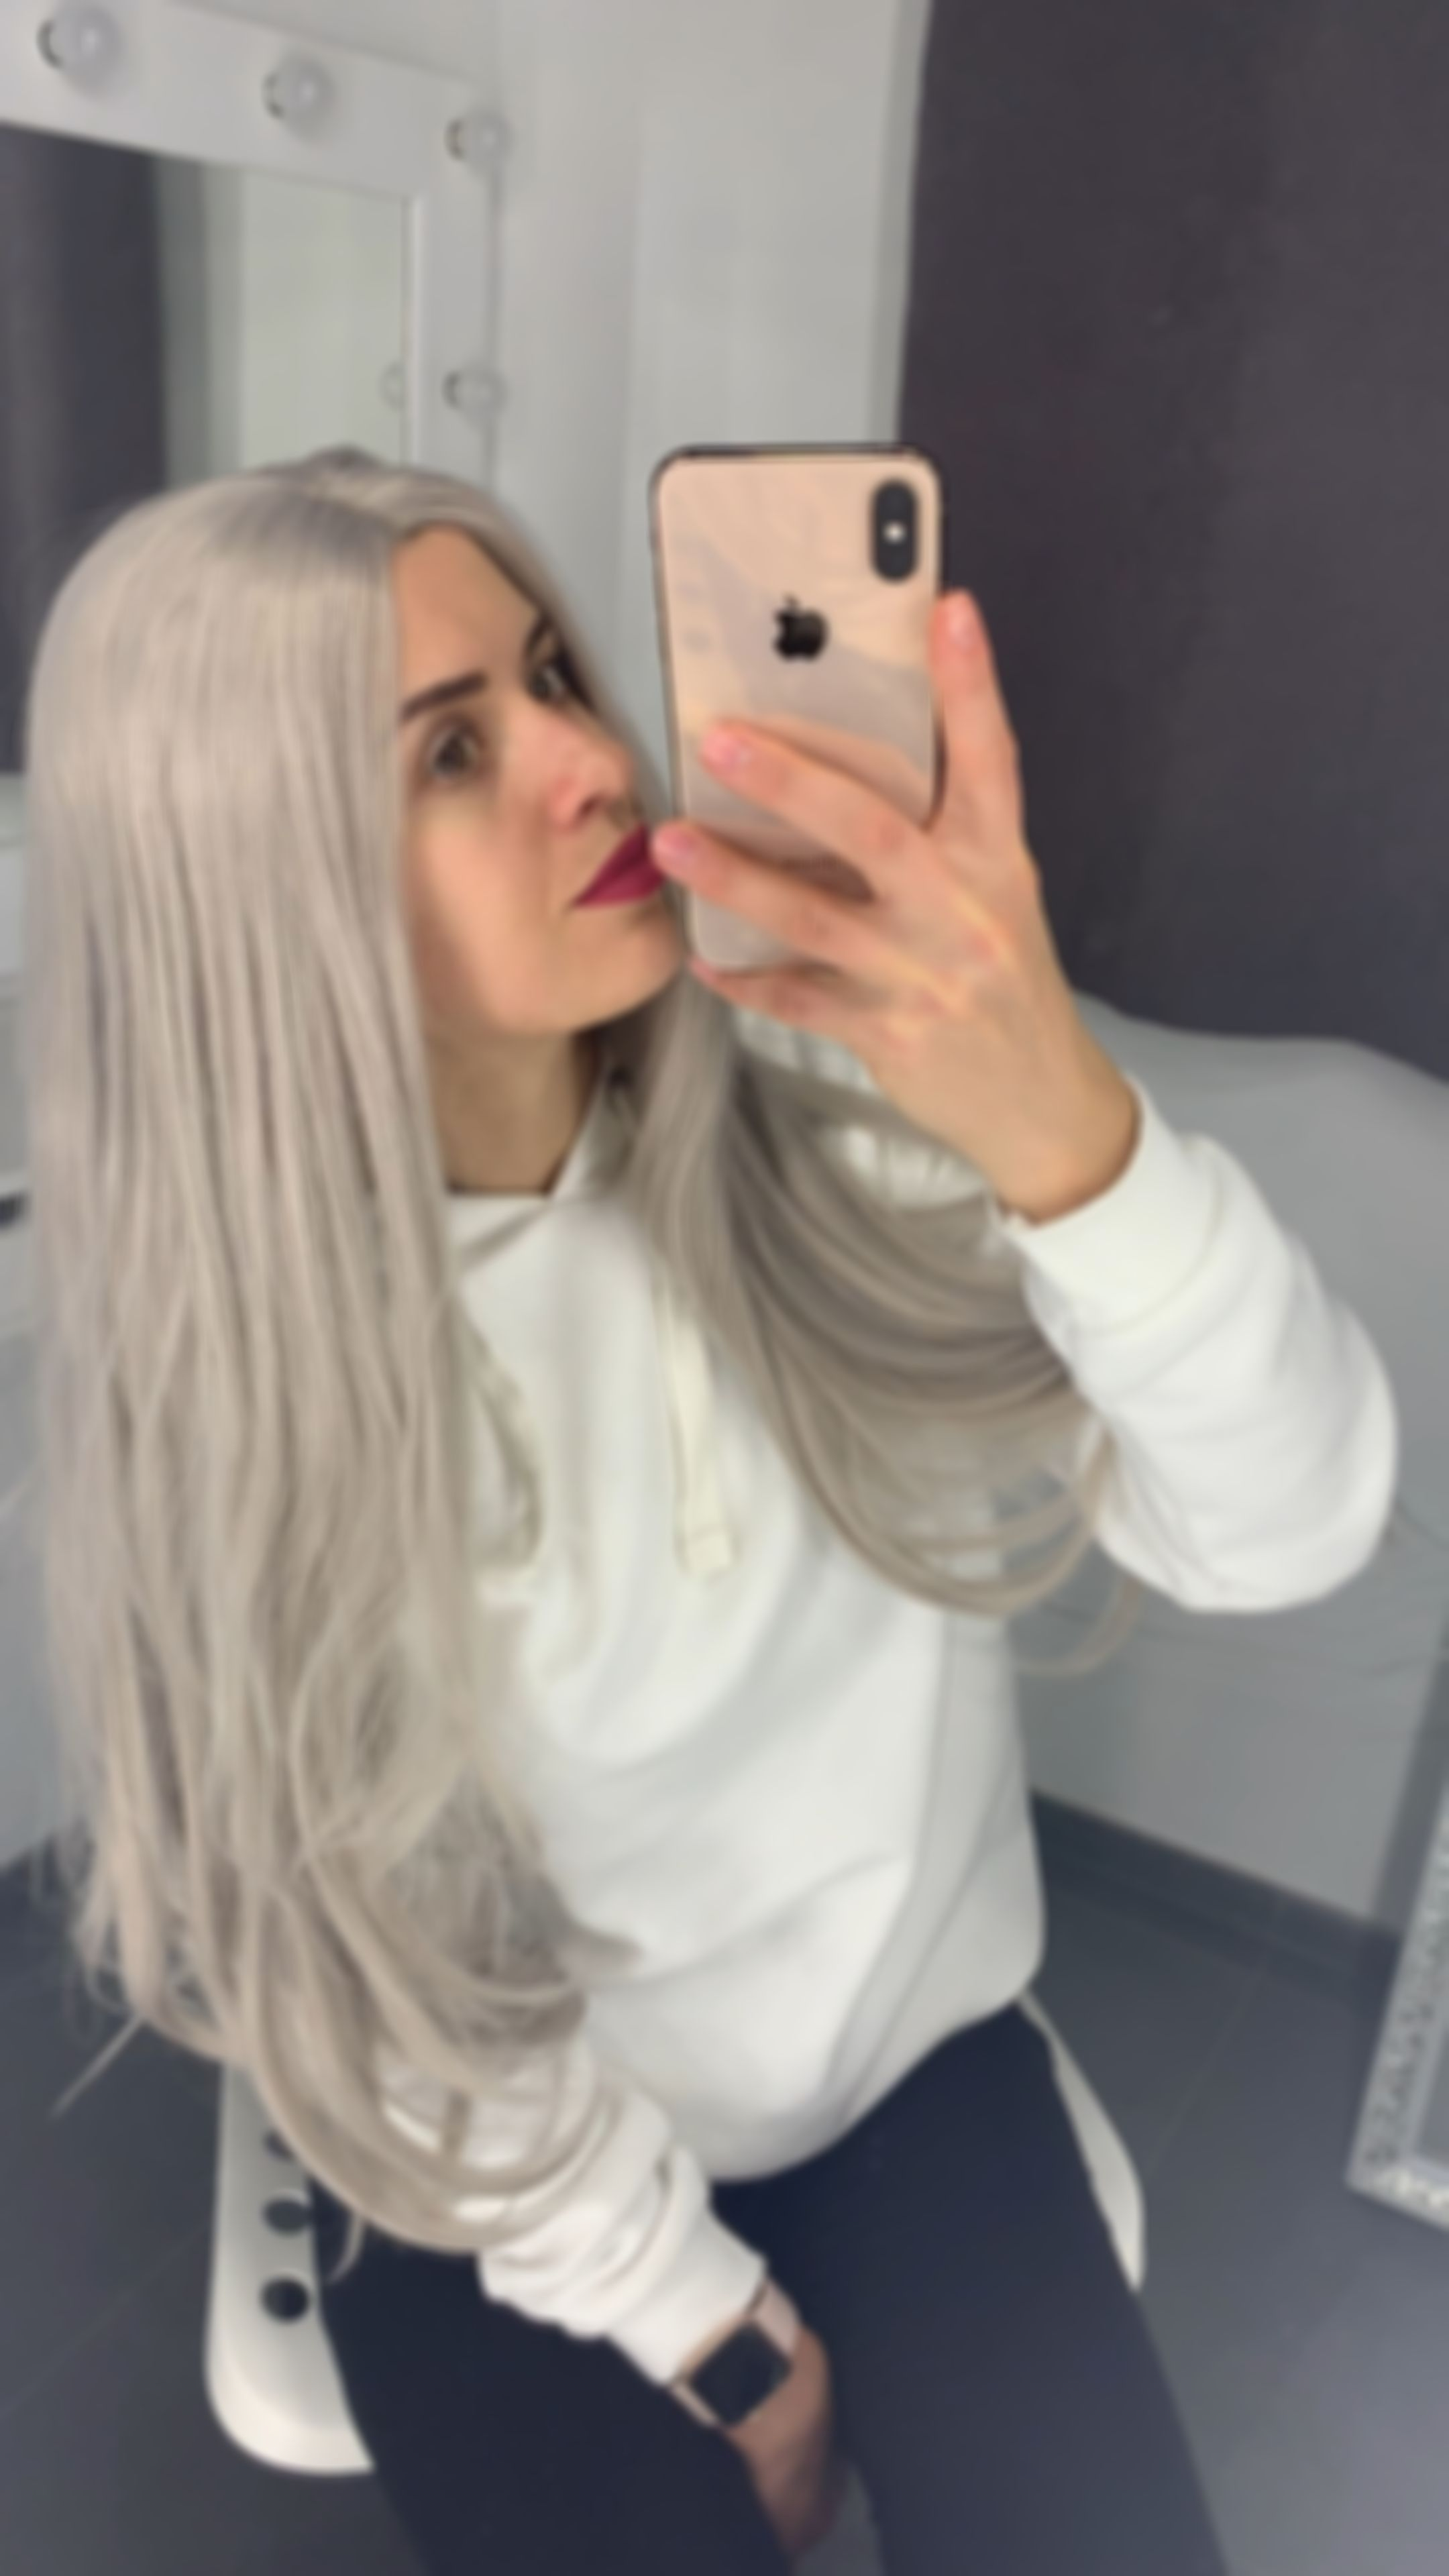 Lace Frontal Wigs For Women Gray Wigs Wet And Wavy Closure Resistant Grey Hair